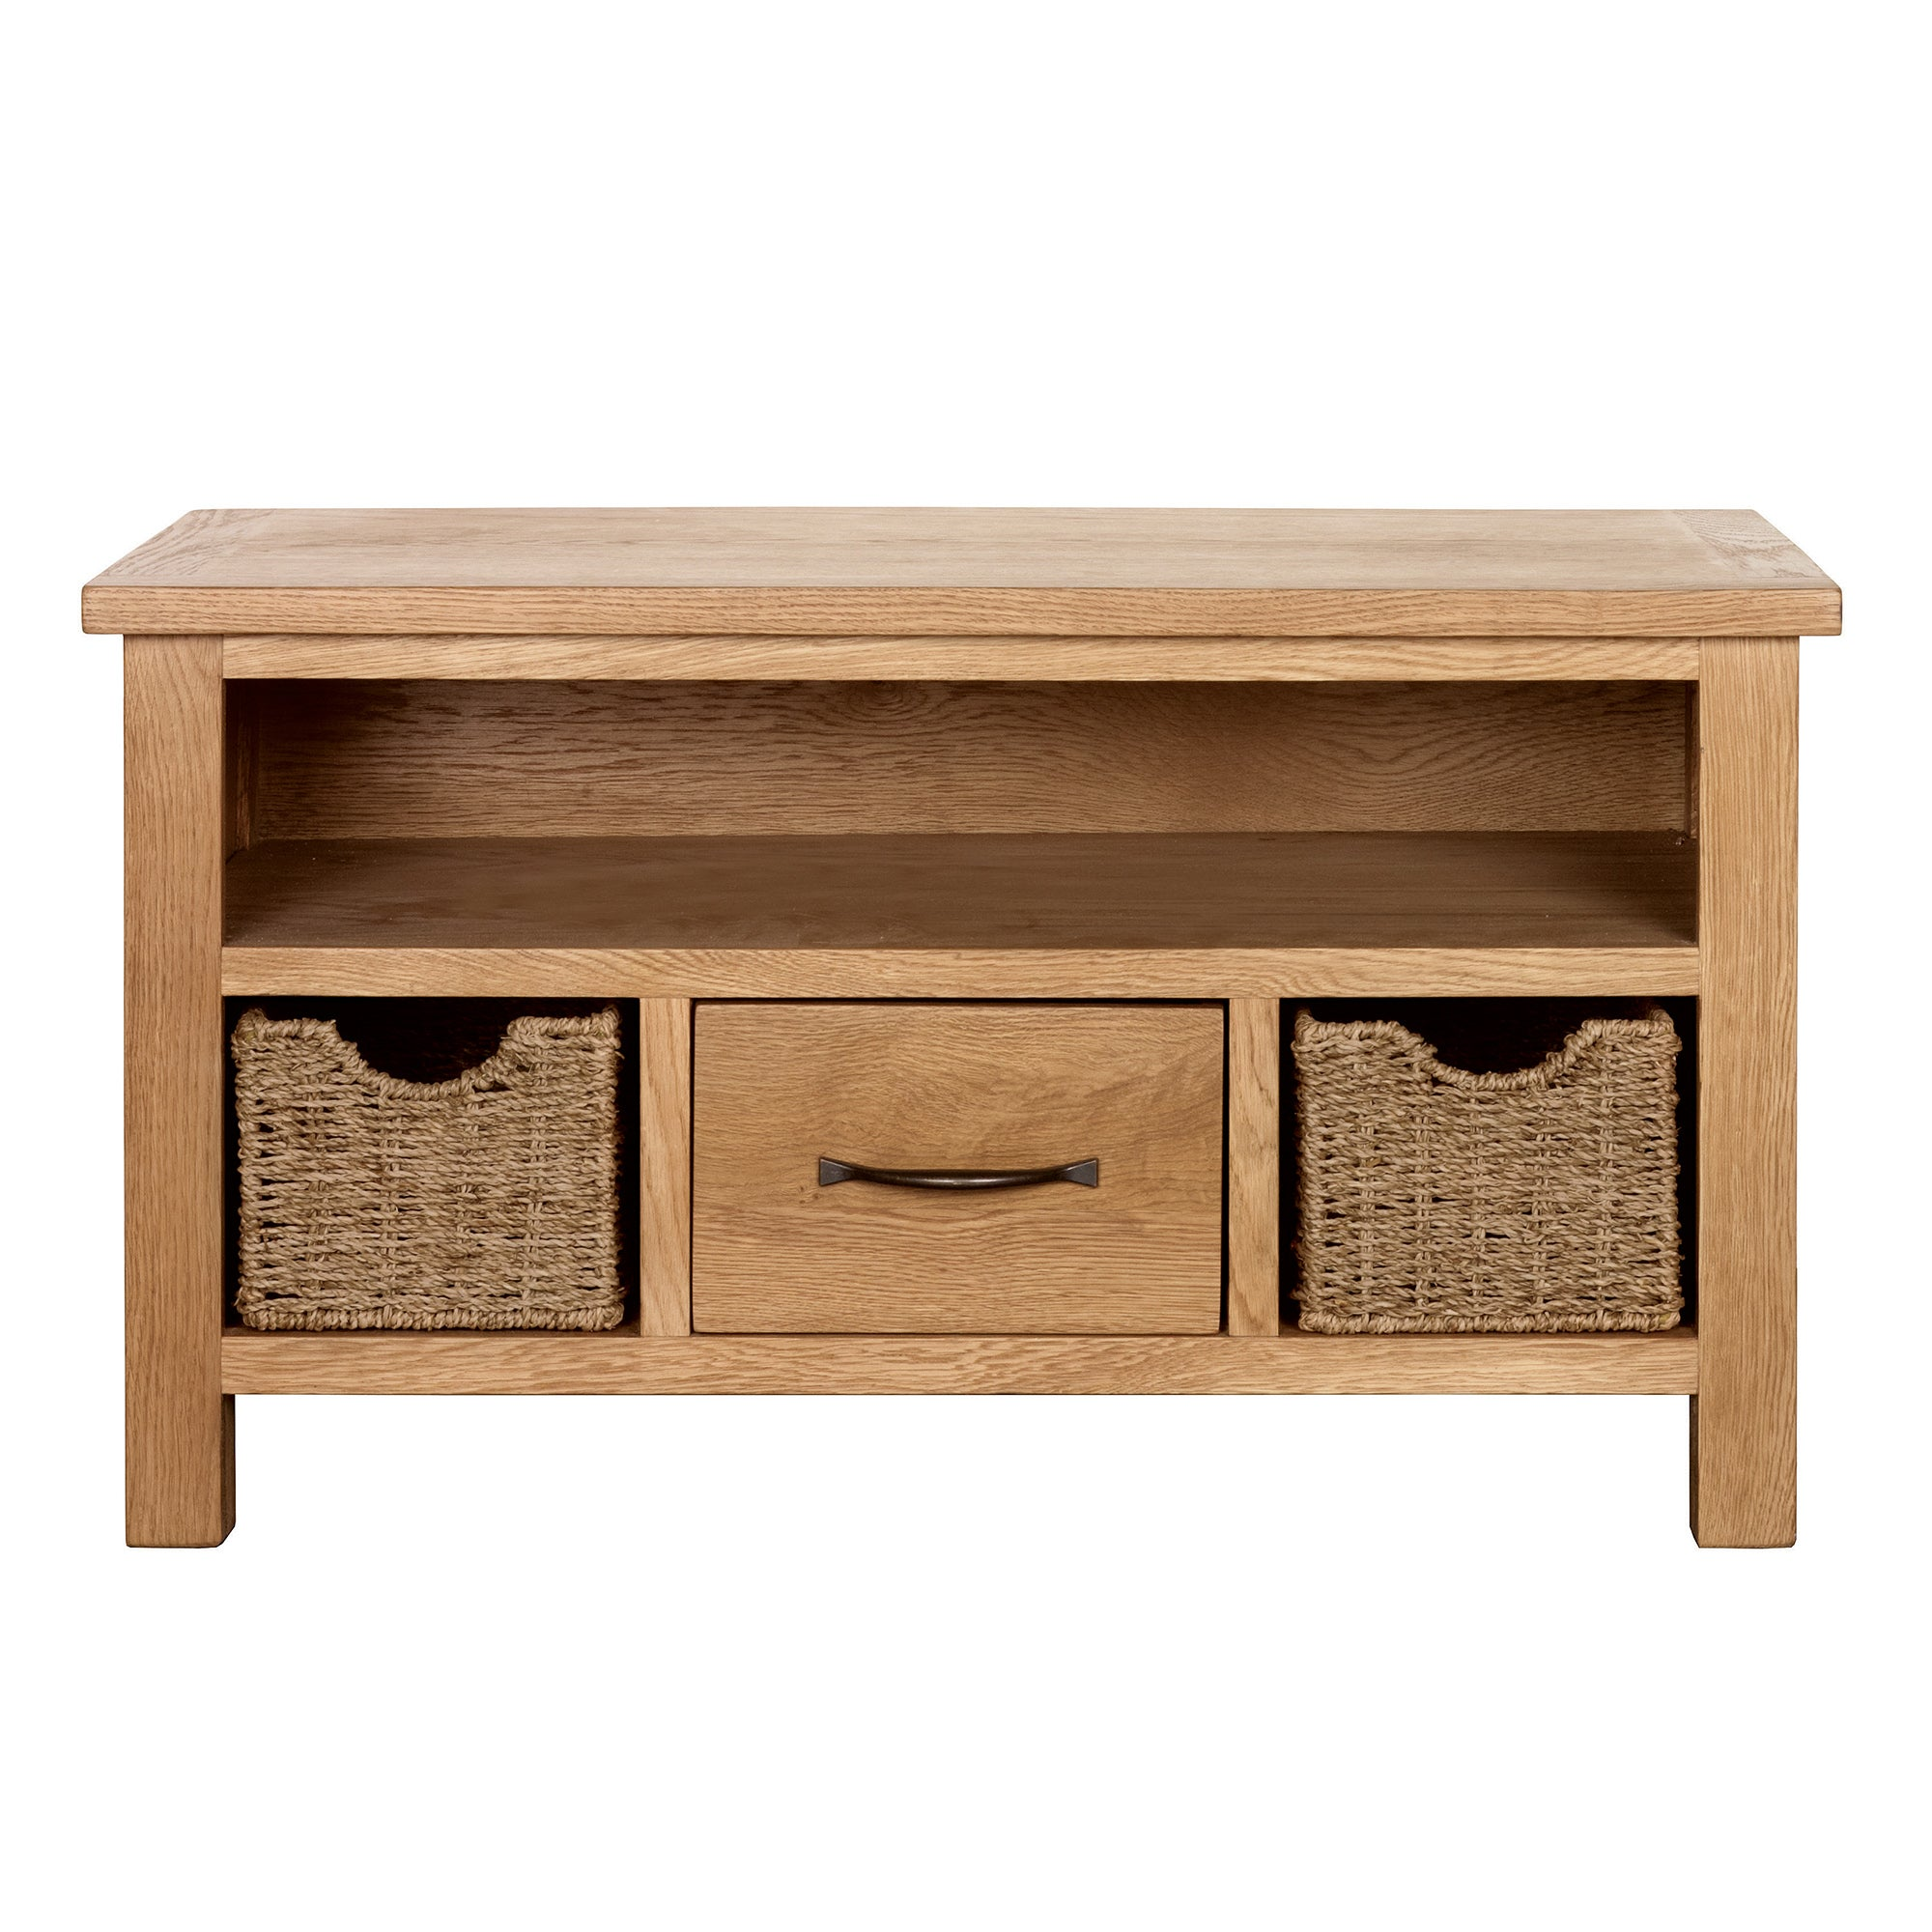 Sidmouth Oak TV Stand With Baskets Light Brown  Natural